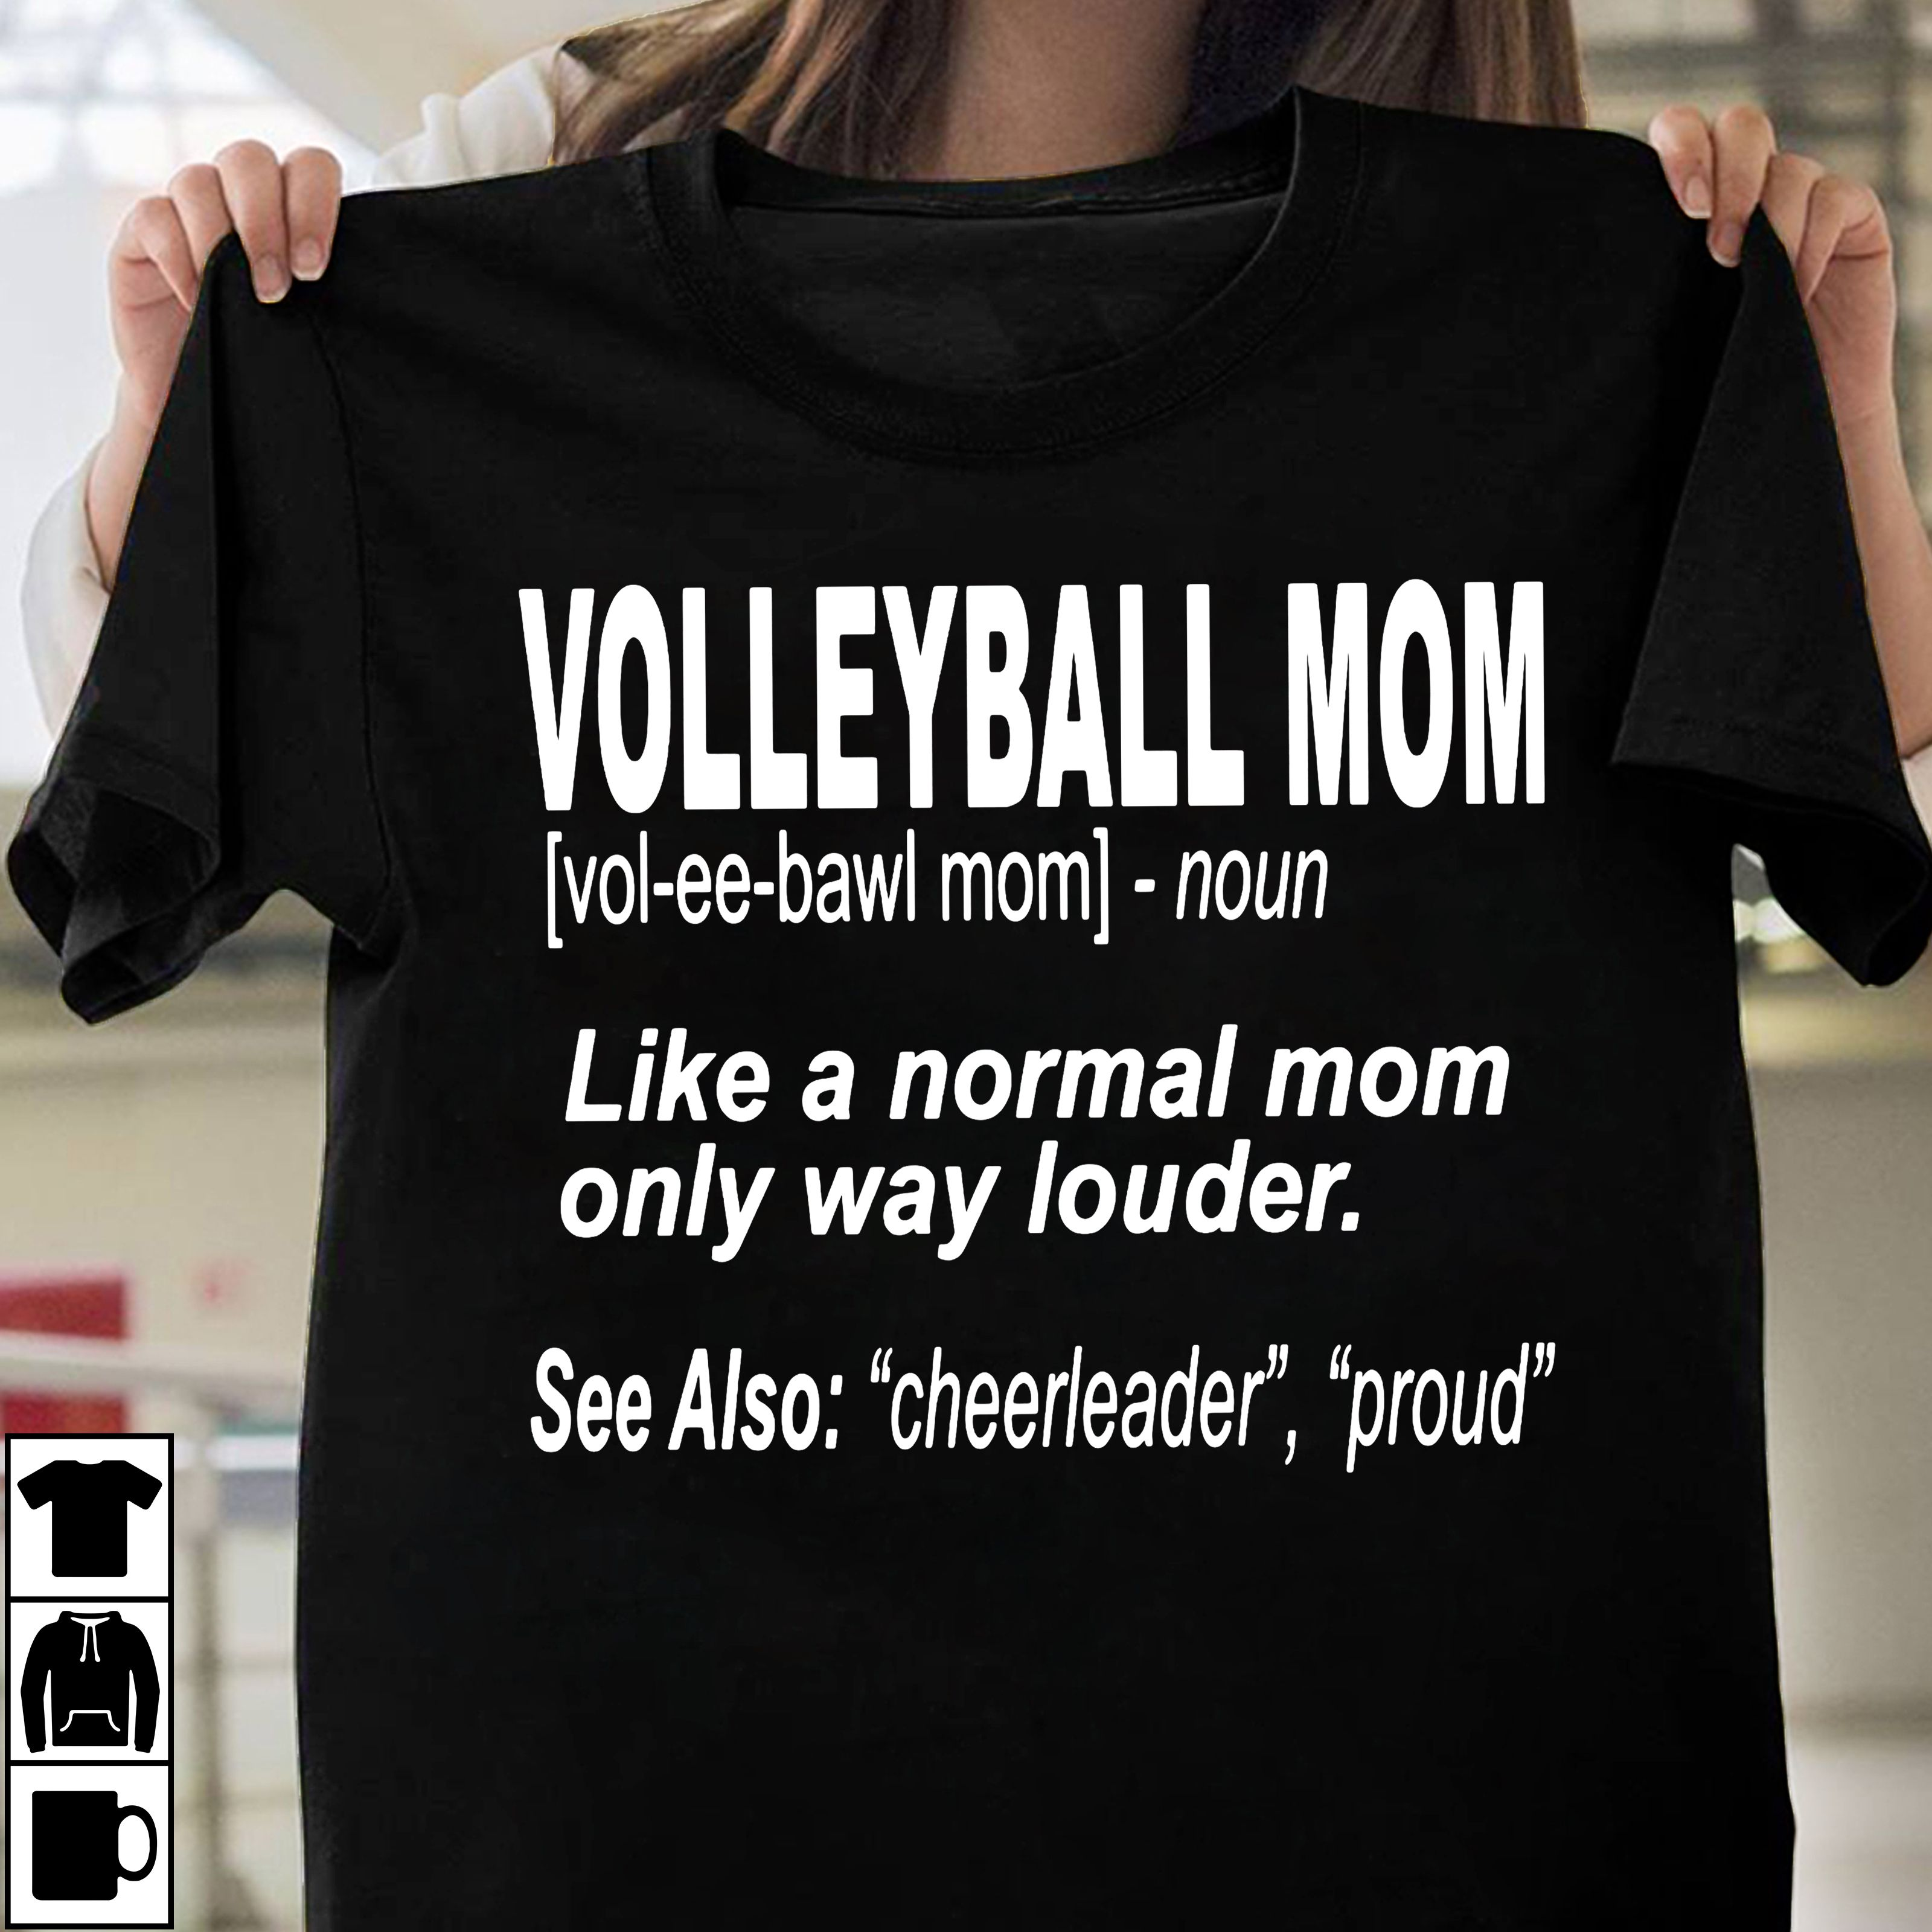 Pin By Xo On Volleyball Volleyball Shirts Volleyball Mom T Shirt